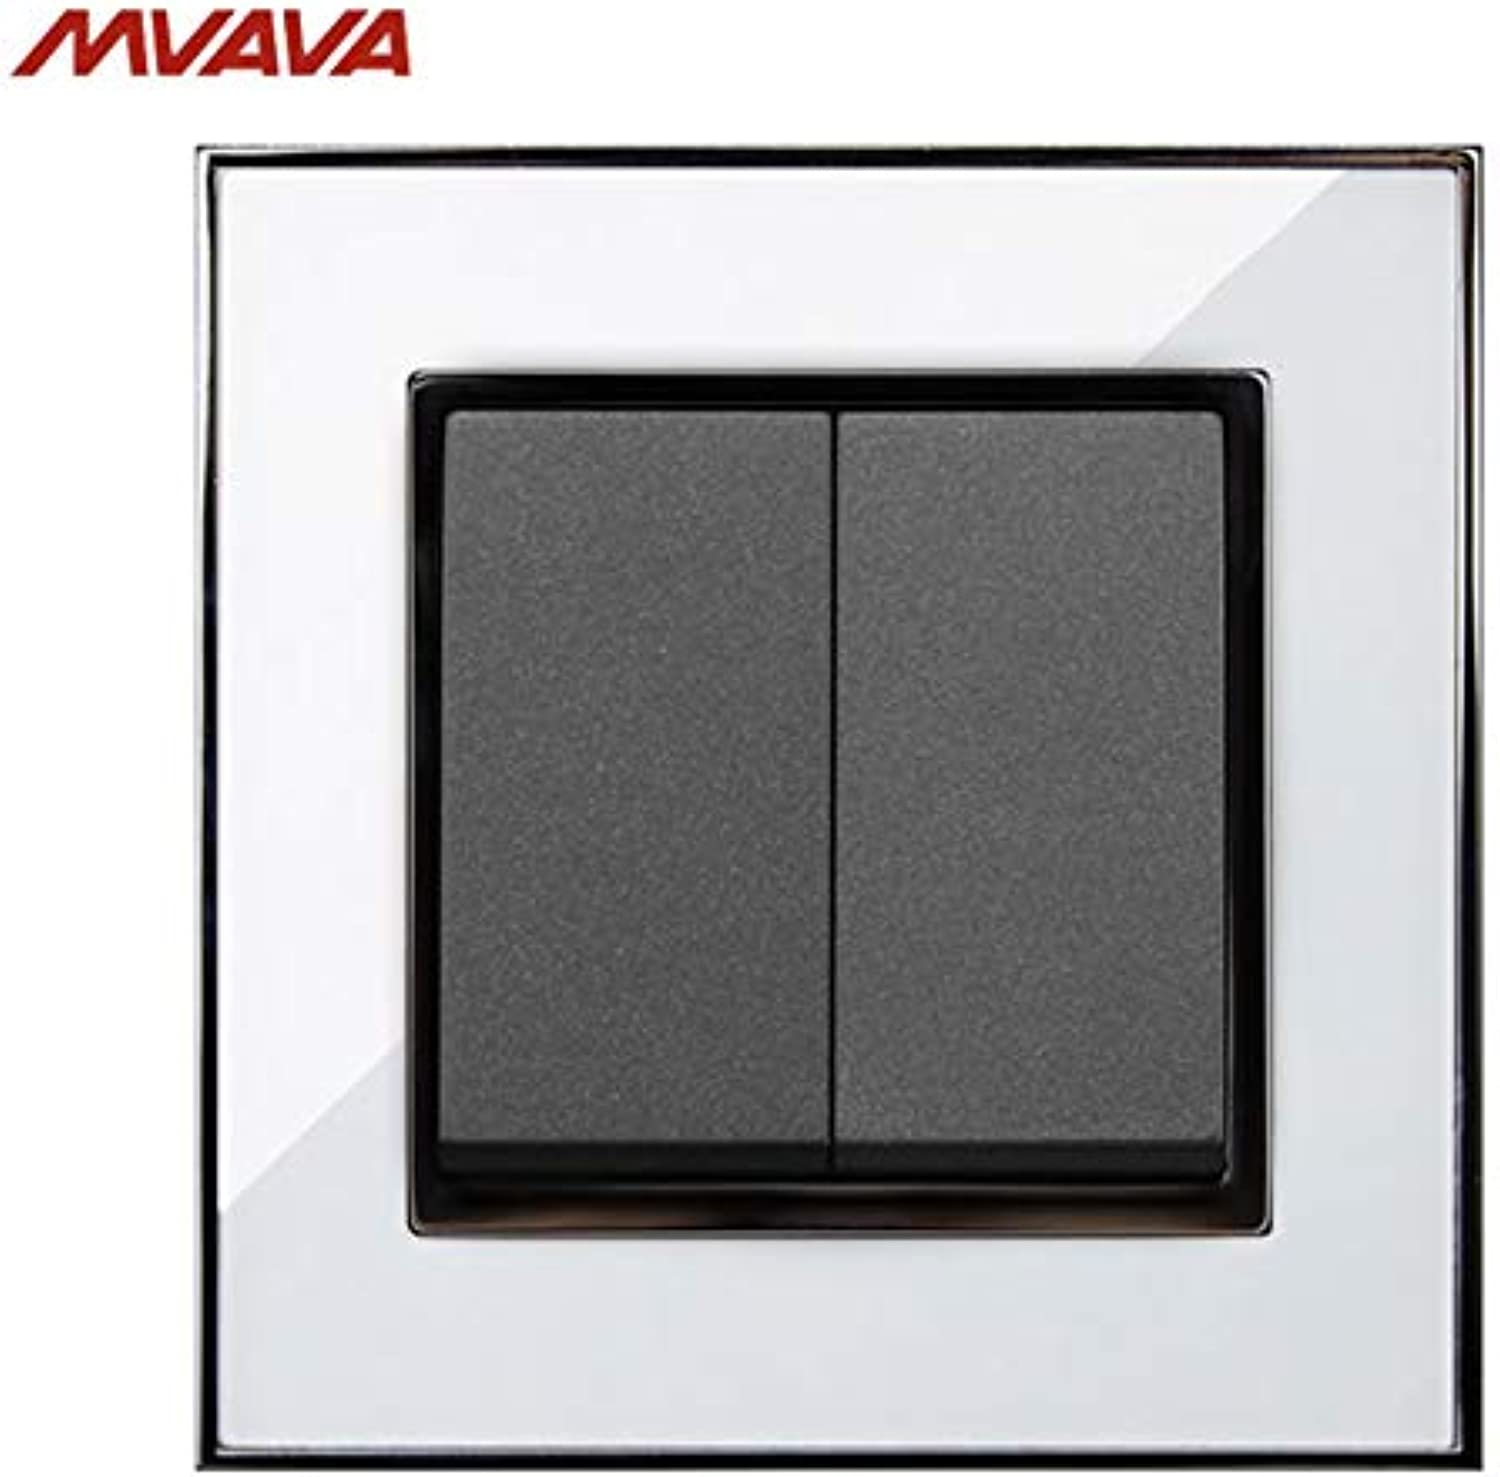 MVAVA 16A Light Wall Switch 2 Gang 1 2 Way Wall Decorative Light Control Push Button Luxury Mirror White Panel(color  2 Way)